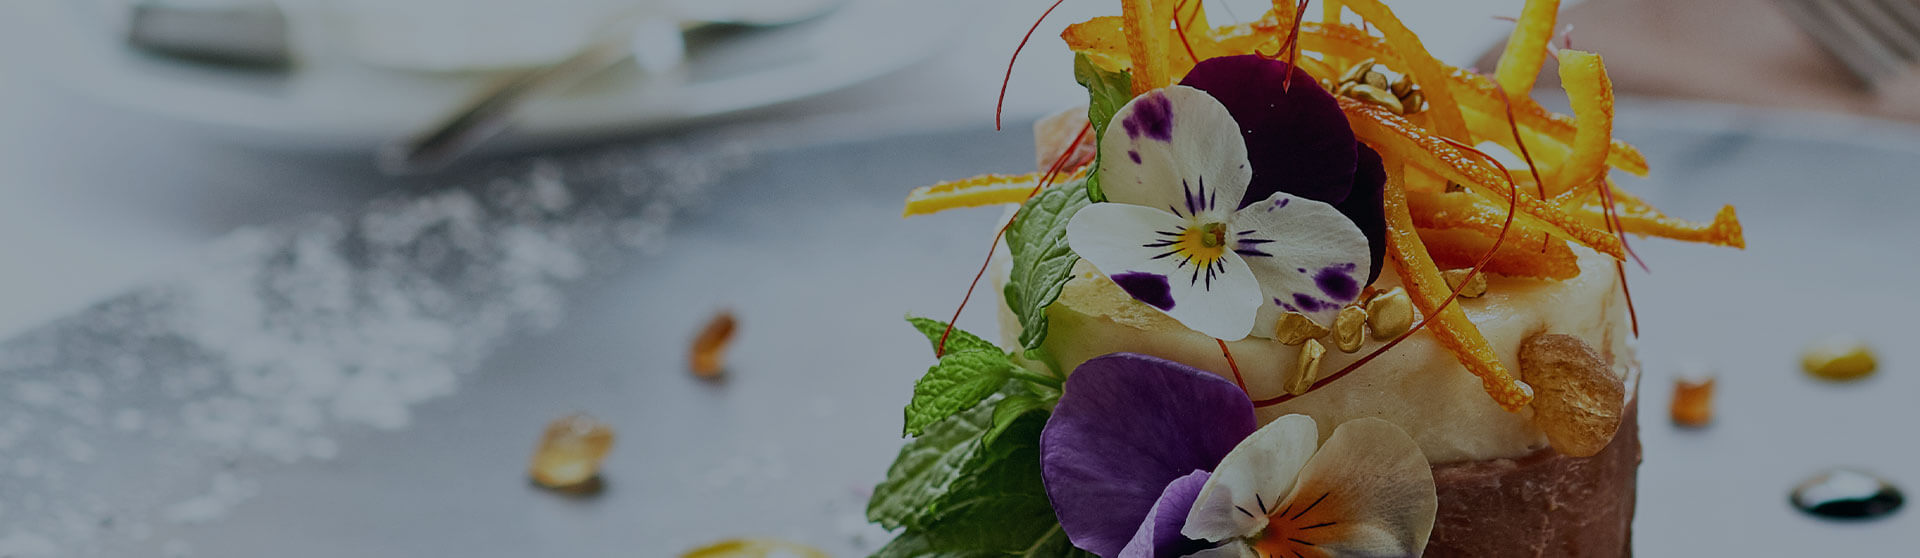 colourful-dessert-with-flowers